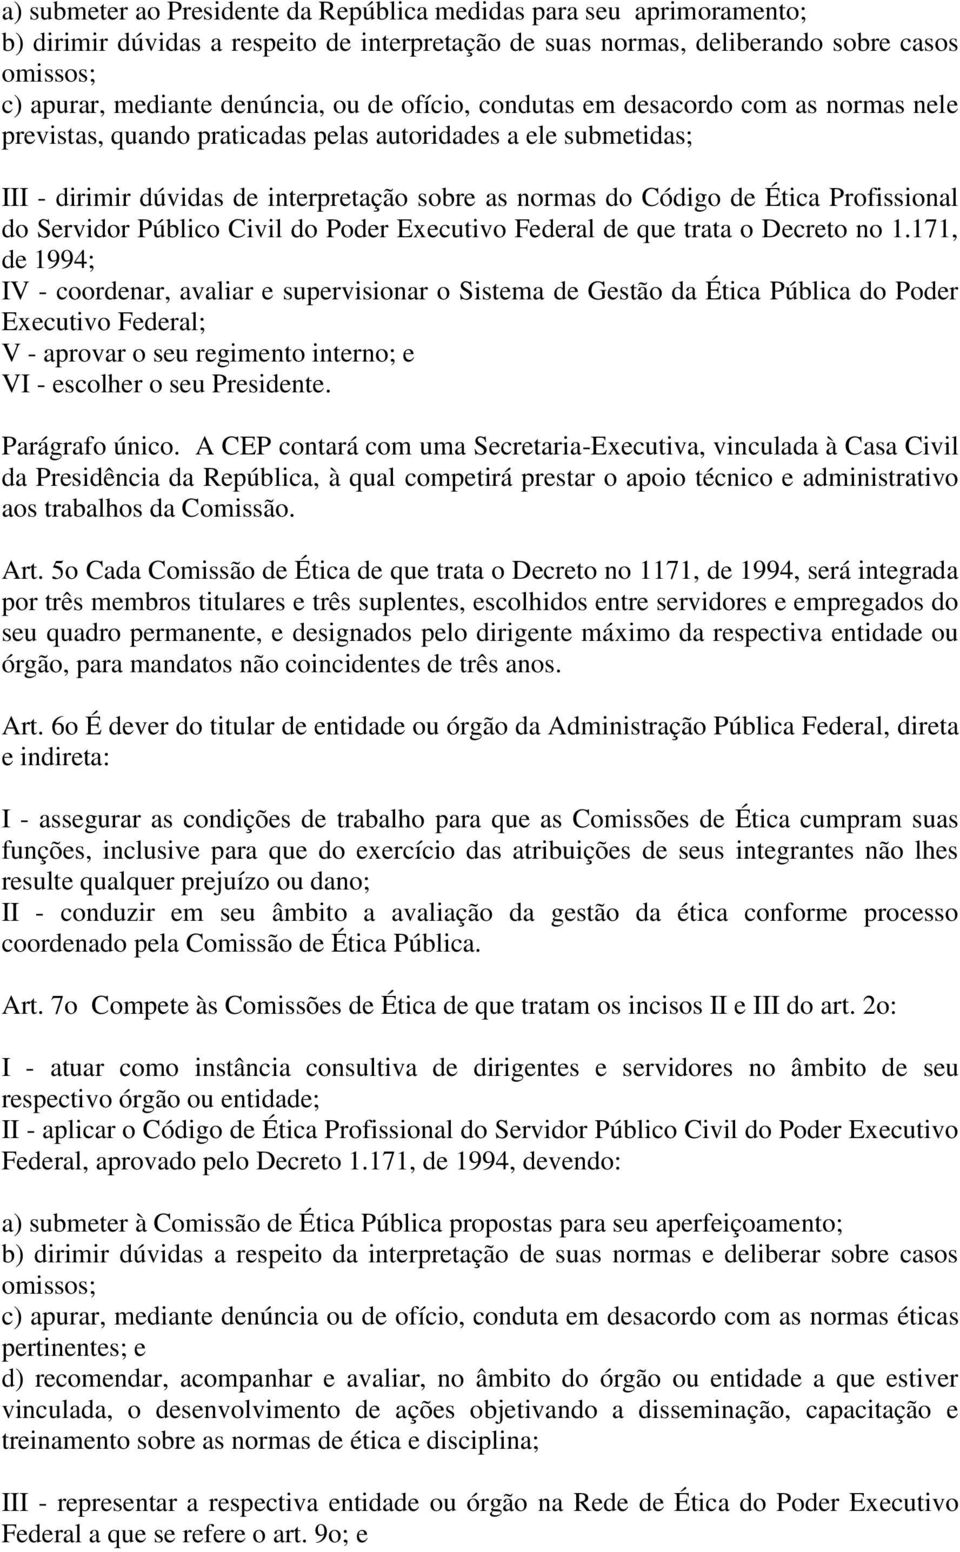 Profissional do Servidor Público Civil do Poder Executivo Federal de que trata o Decreto no 1.